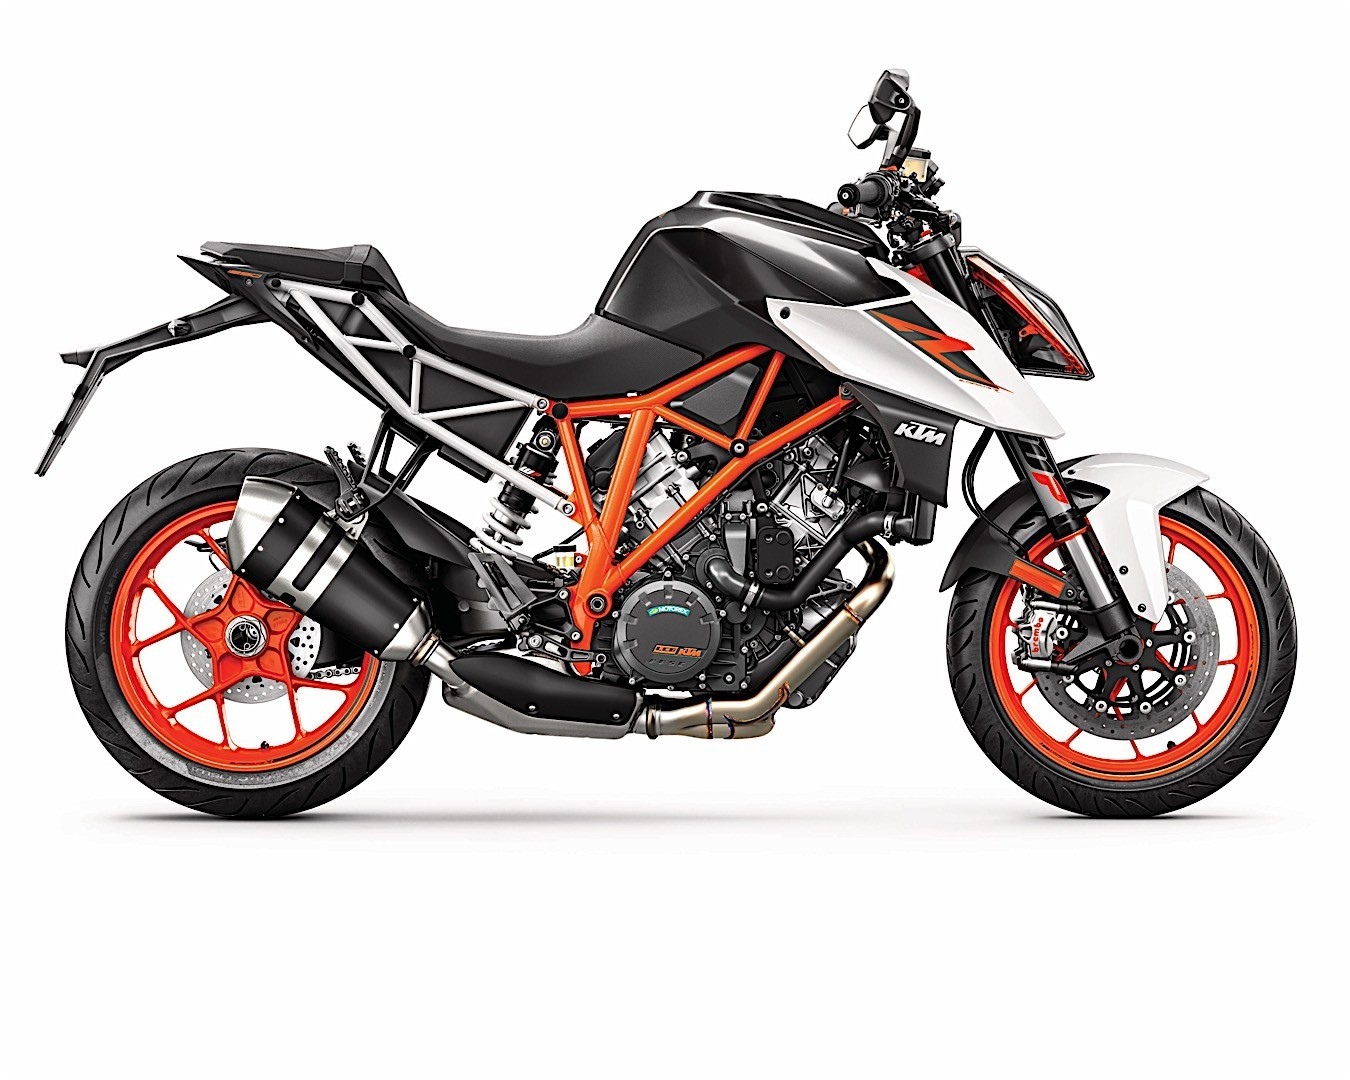 2017 ktm 1290 super duke r the beast reloaded autoevolution. Black Bedroom Furniture Sets. Home Design Ideas